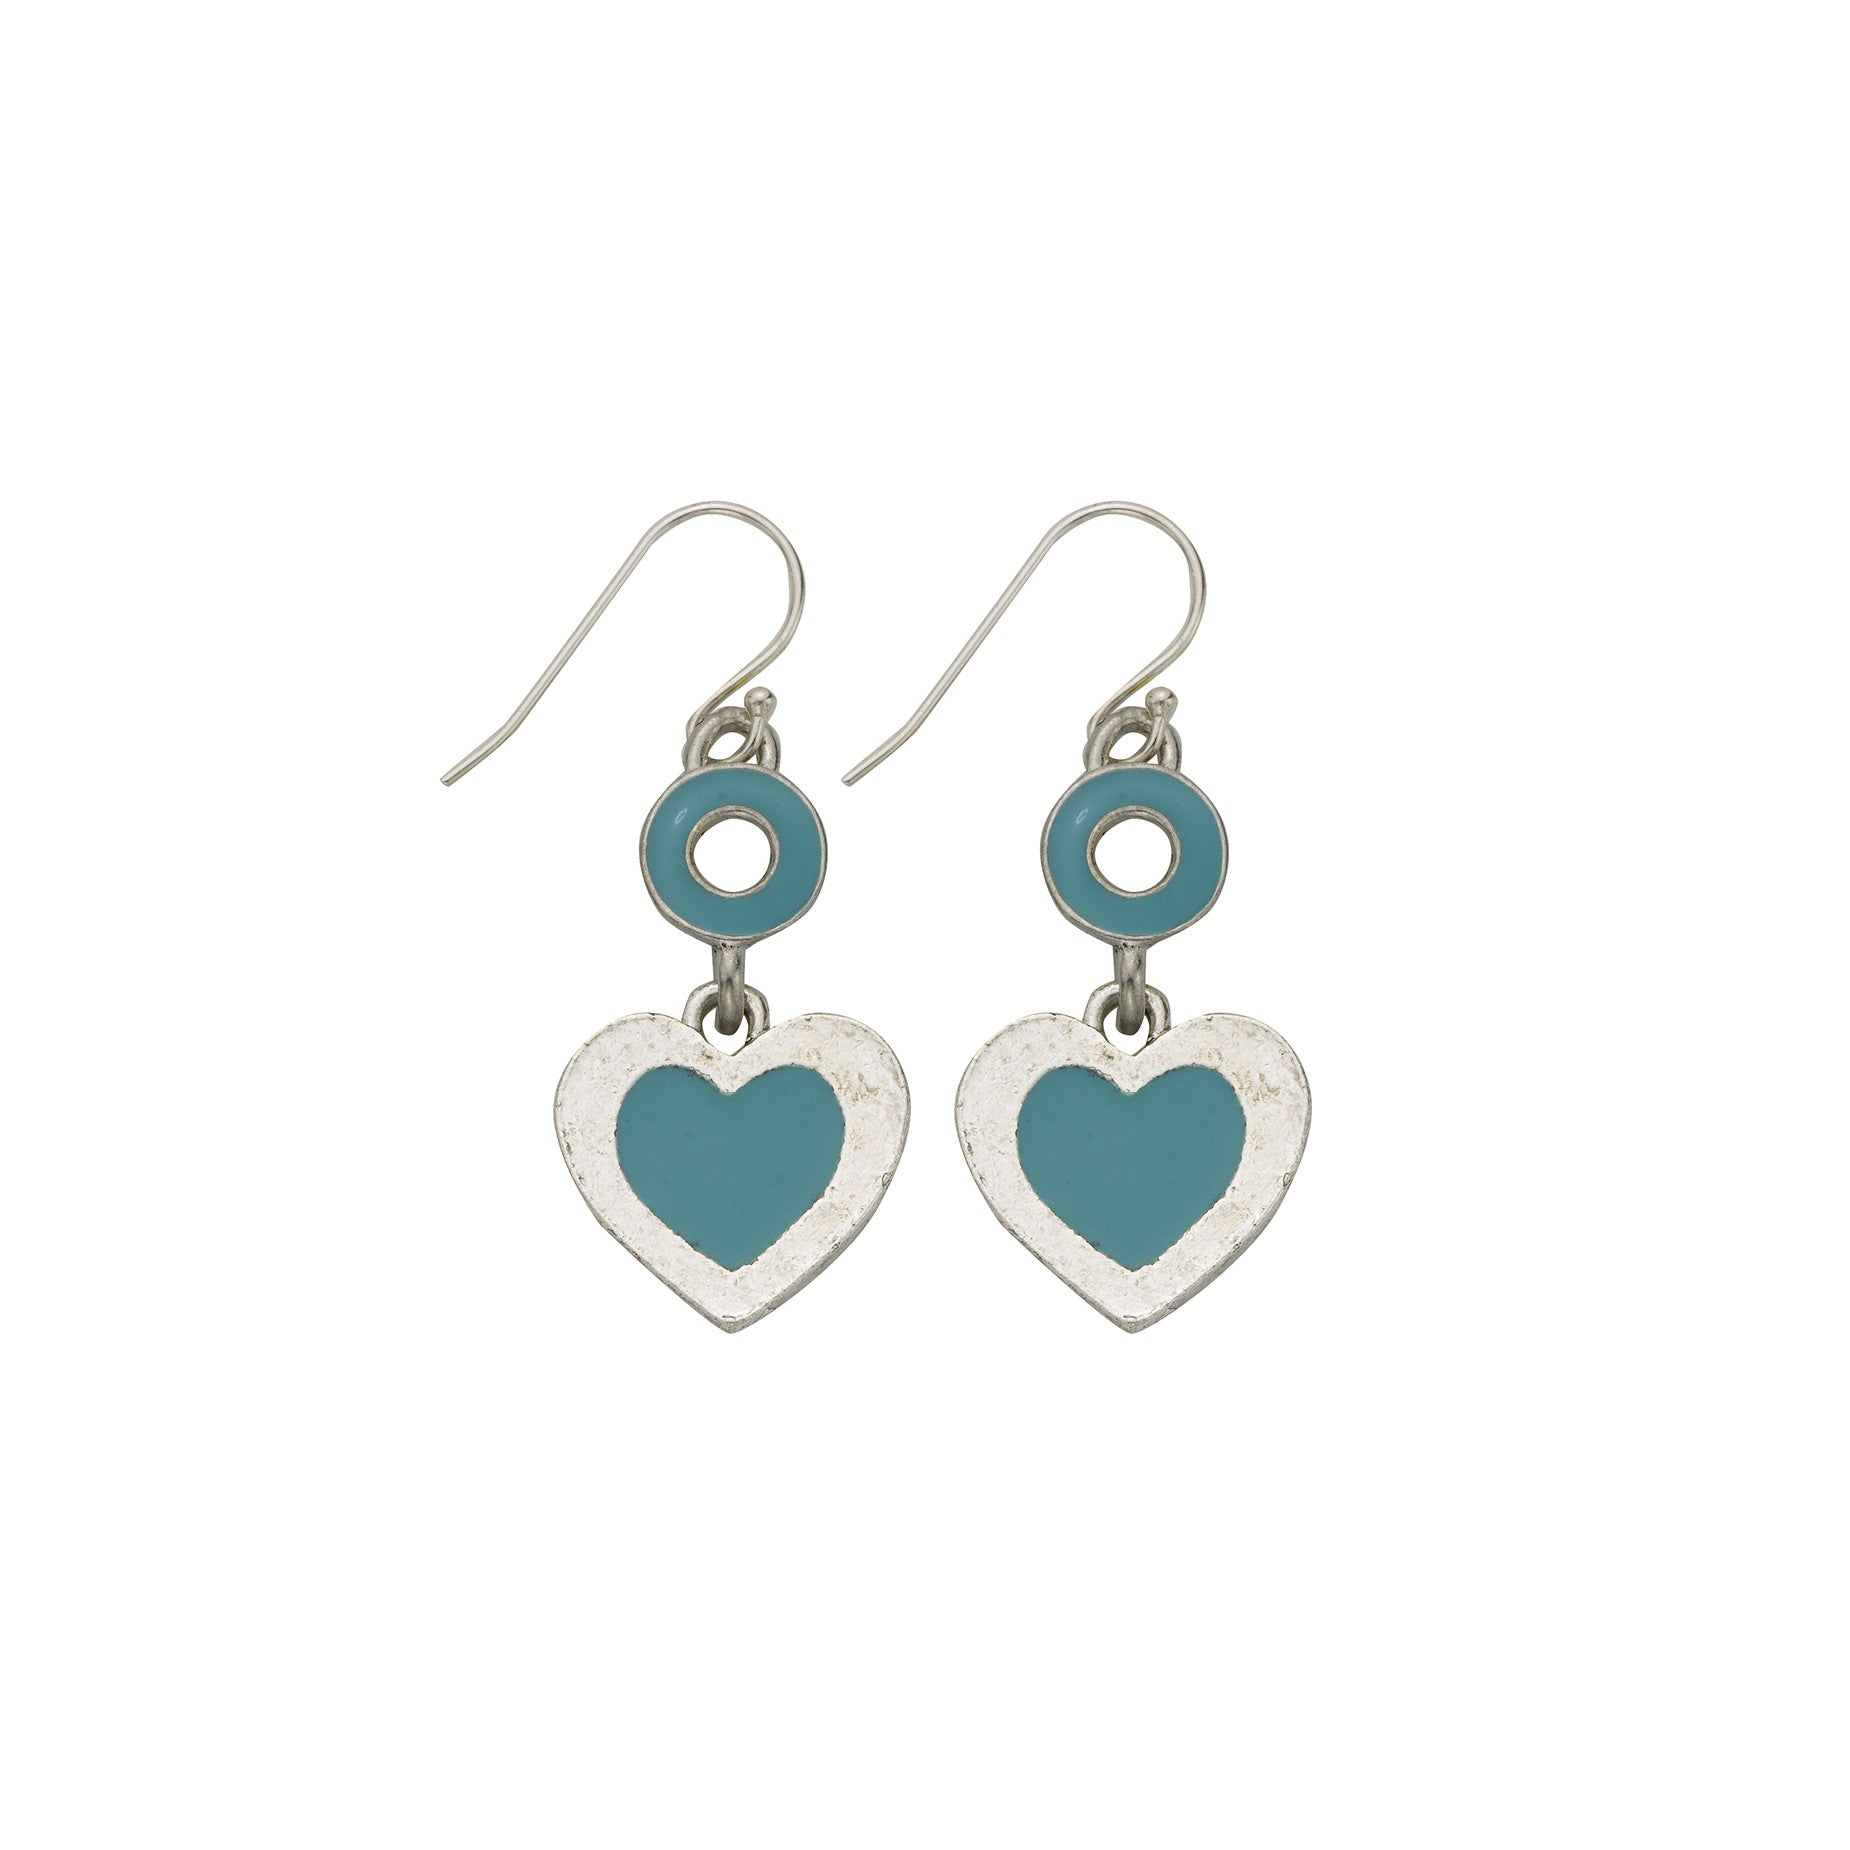 Heart Teal Earrings - SamandNan